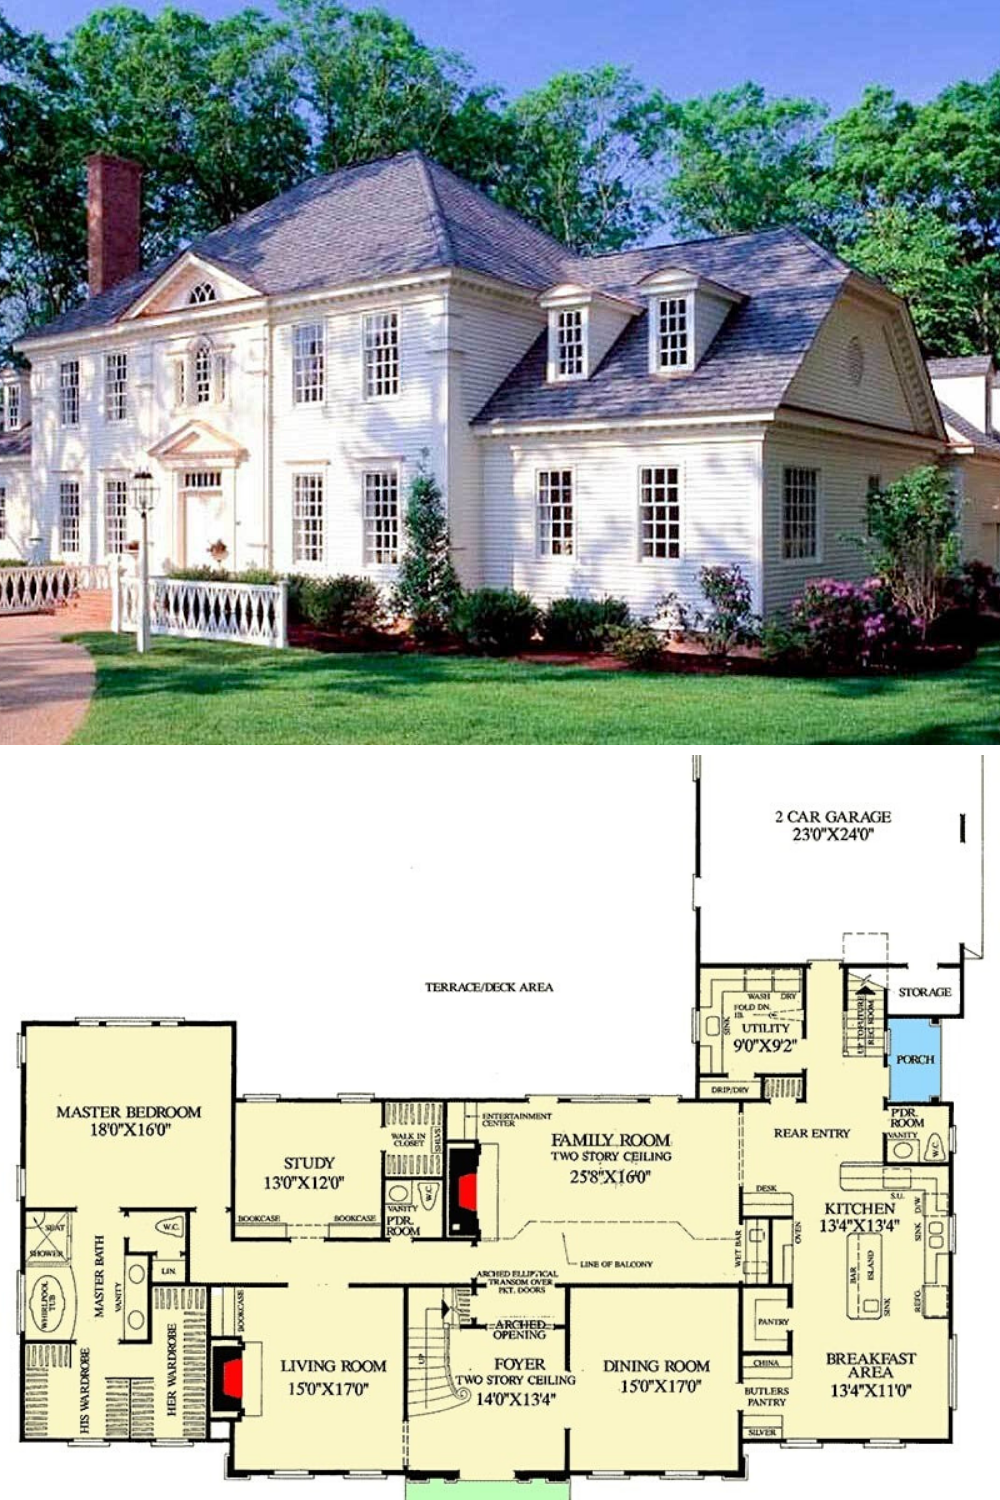 4 Bedroom Two Story Traditional Colonial Home Floor Plan Colonial House Plans Colonial House Southern House Plans